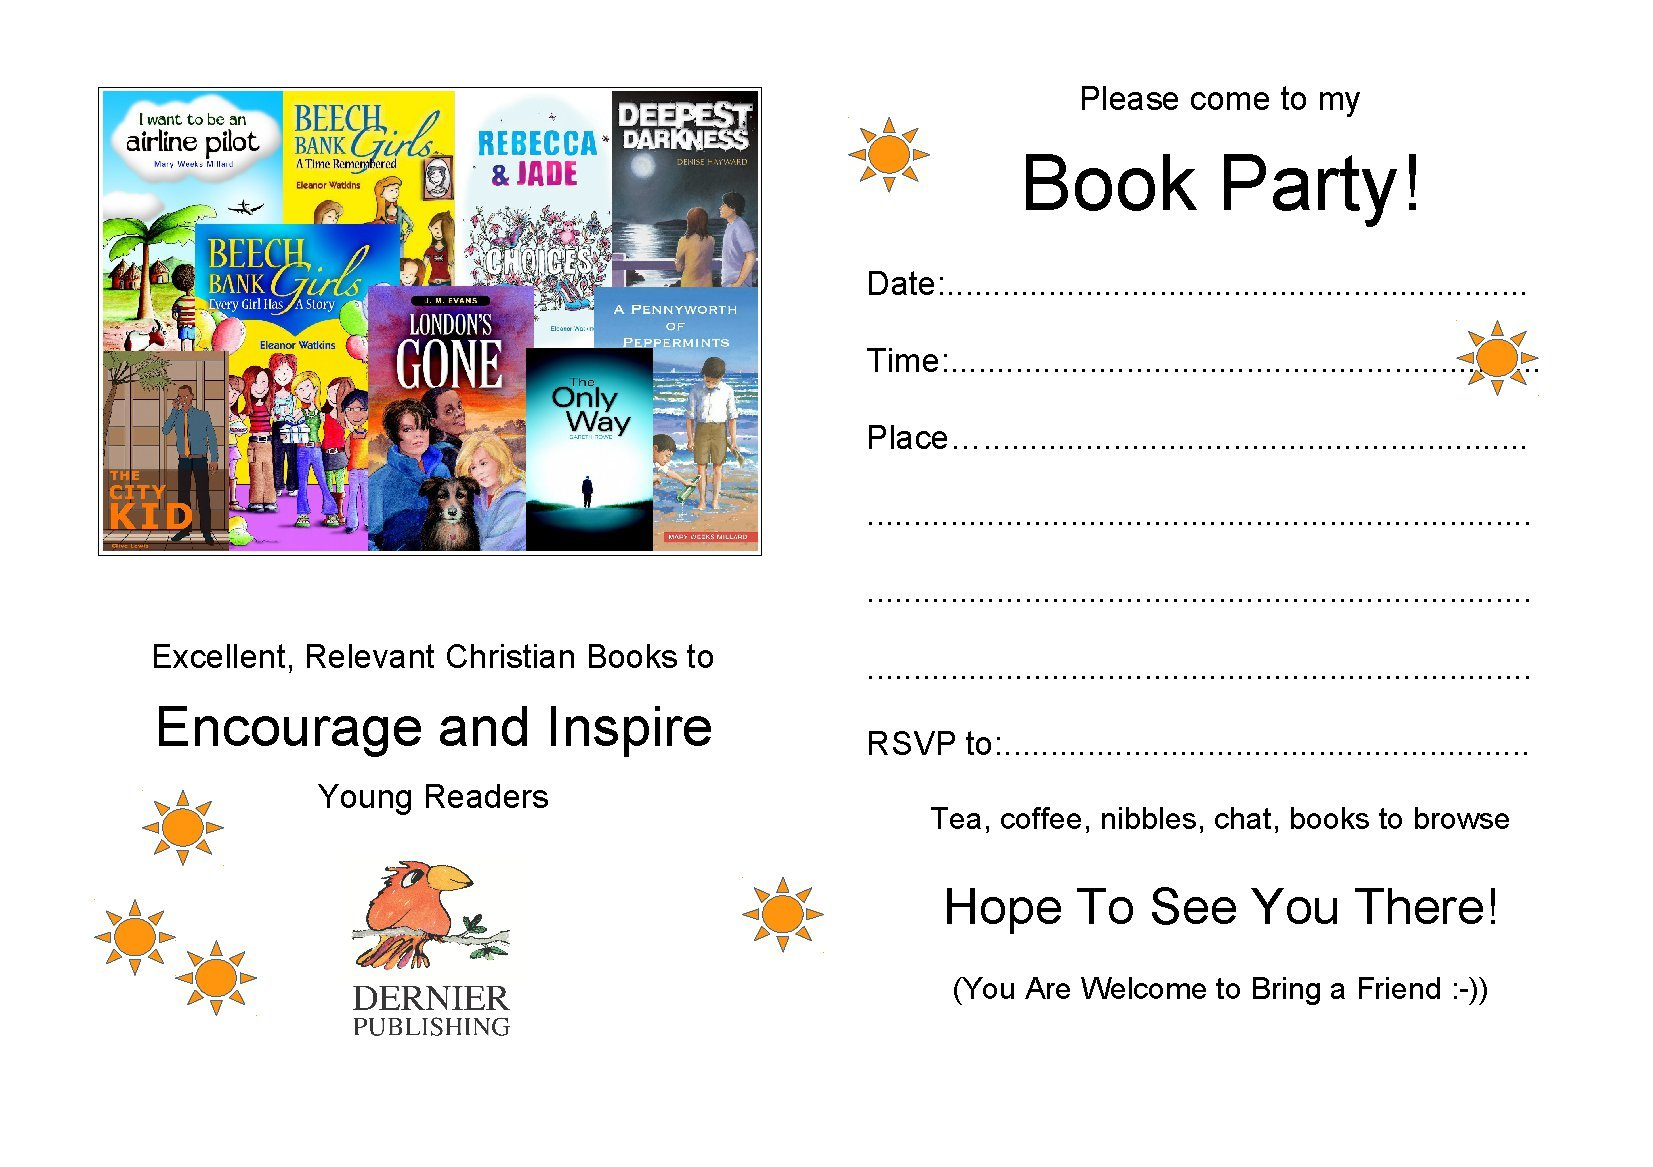 Dernier Publishing book party invite